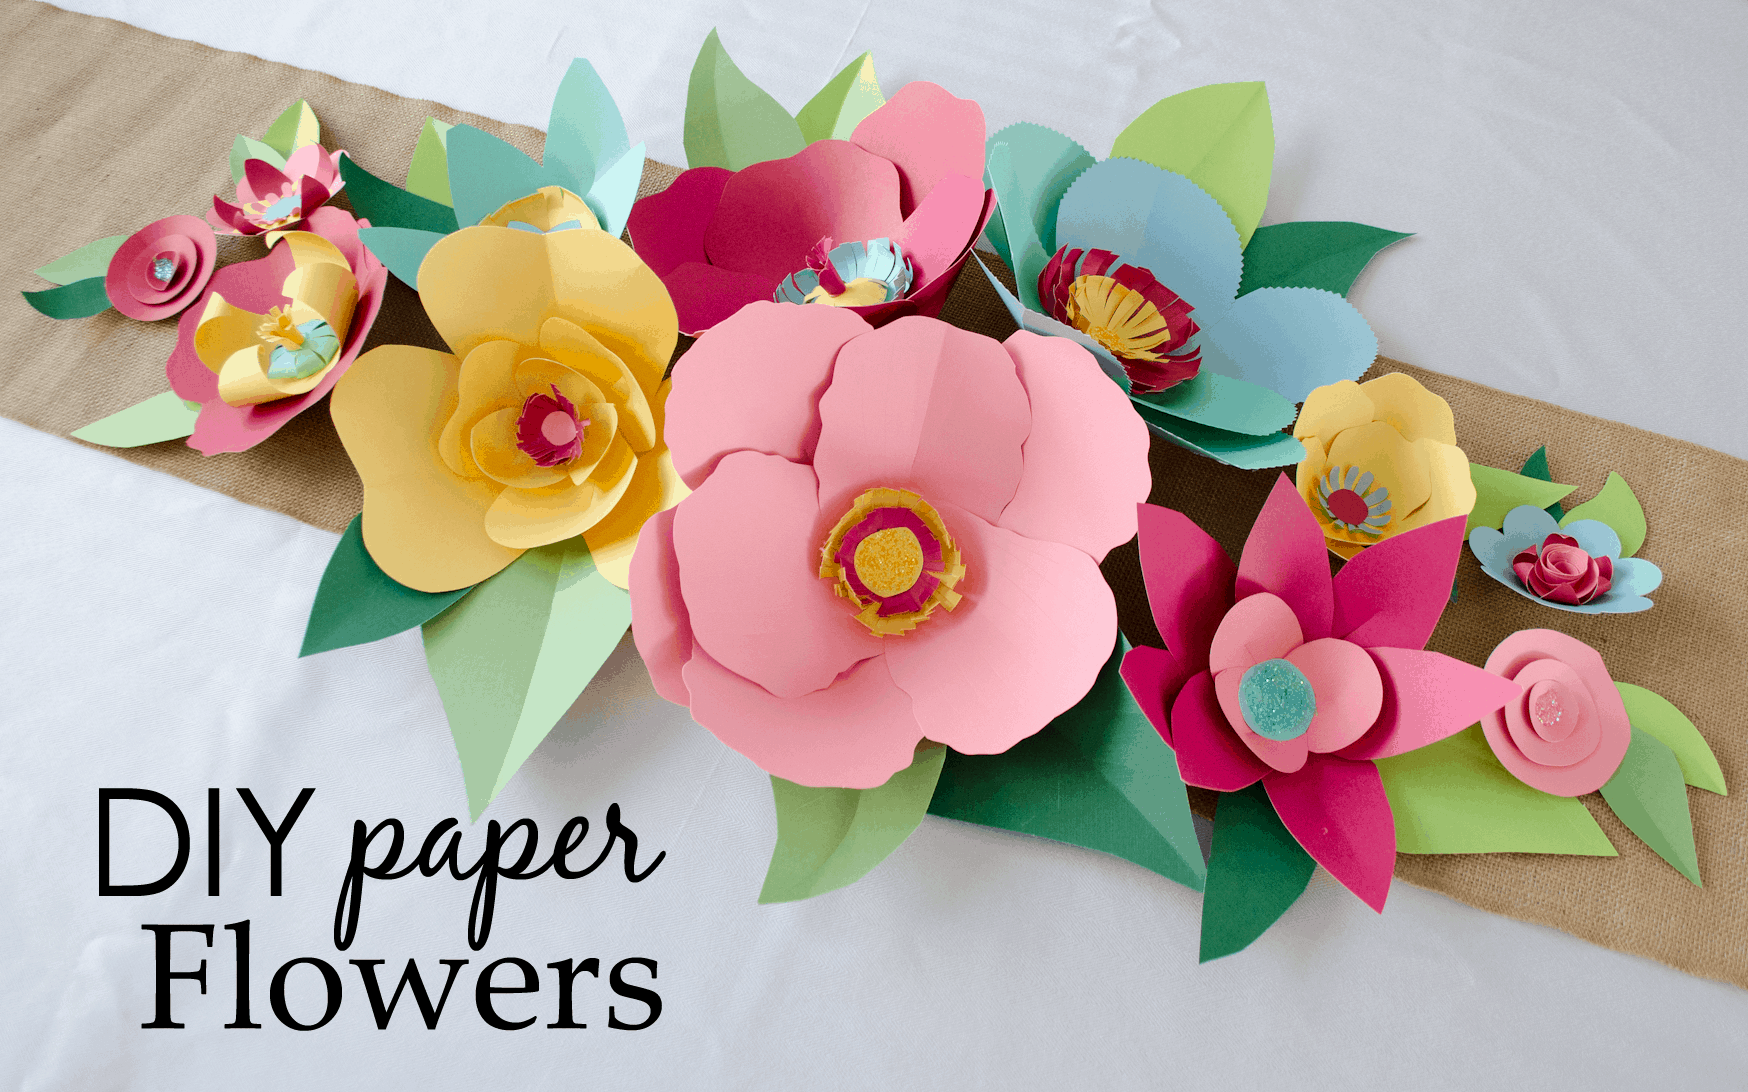 Diy flower craft ideas to try diy paper flowers jeuxipadfo Choice Image